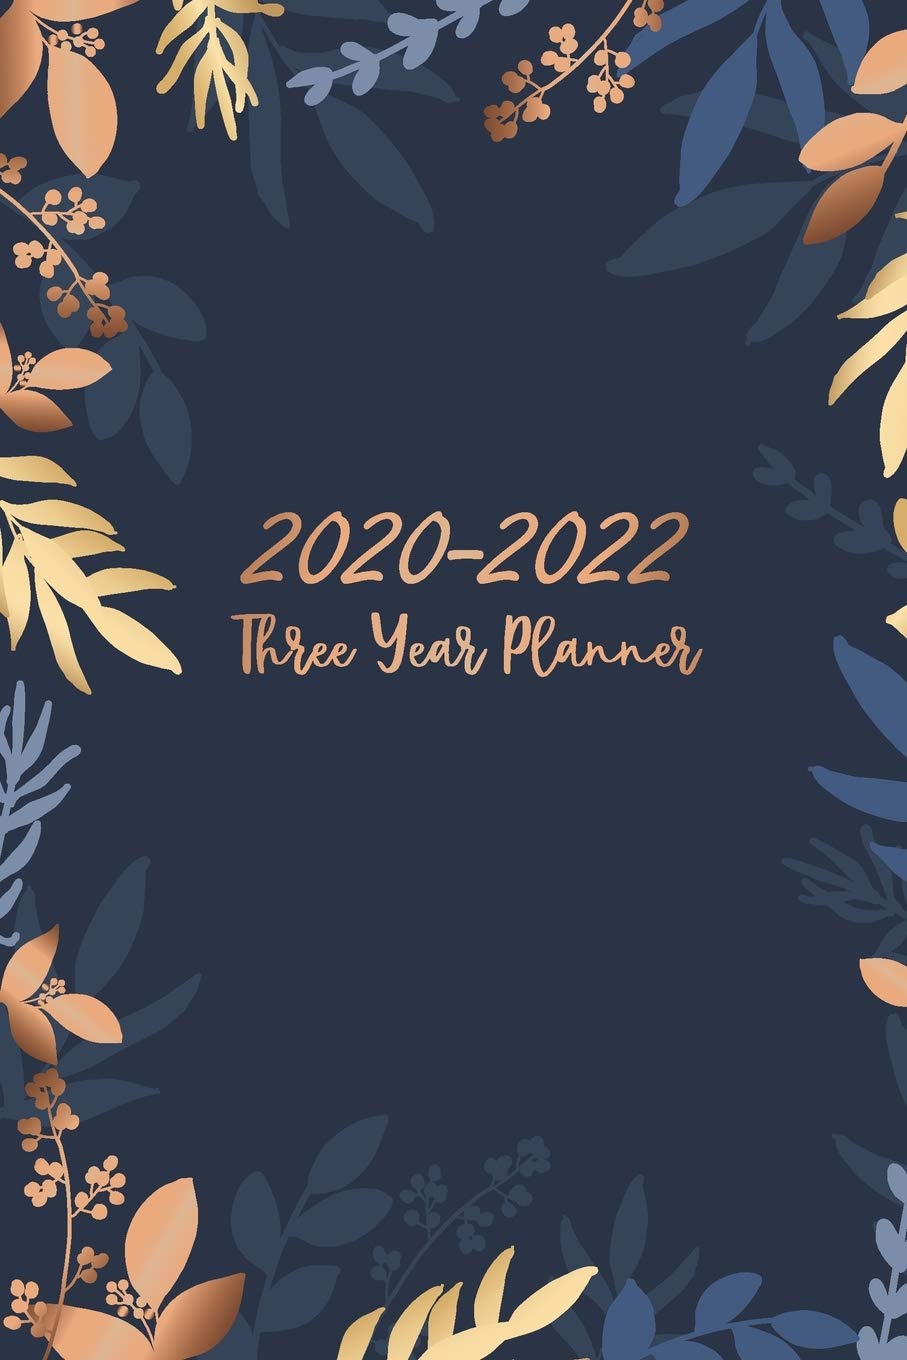 Csi Calendar Spring 2022.Free Download Three Year Planner 2020 2022 Leaves Gold Cover 36 Month Calendar 3 Year Appointment Notebook Academic Agenda Schedule Organizer Logbook For The Holiday 3 Year Monthly Planner 2020 2022 Books Marianaozawagrande02